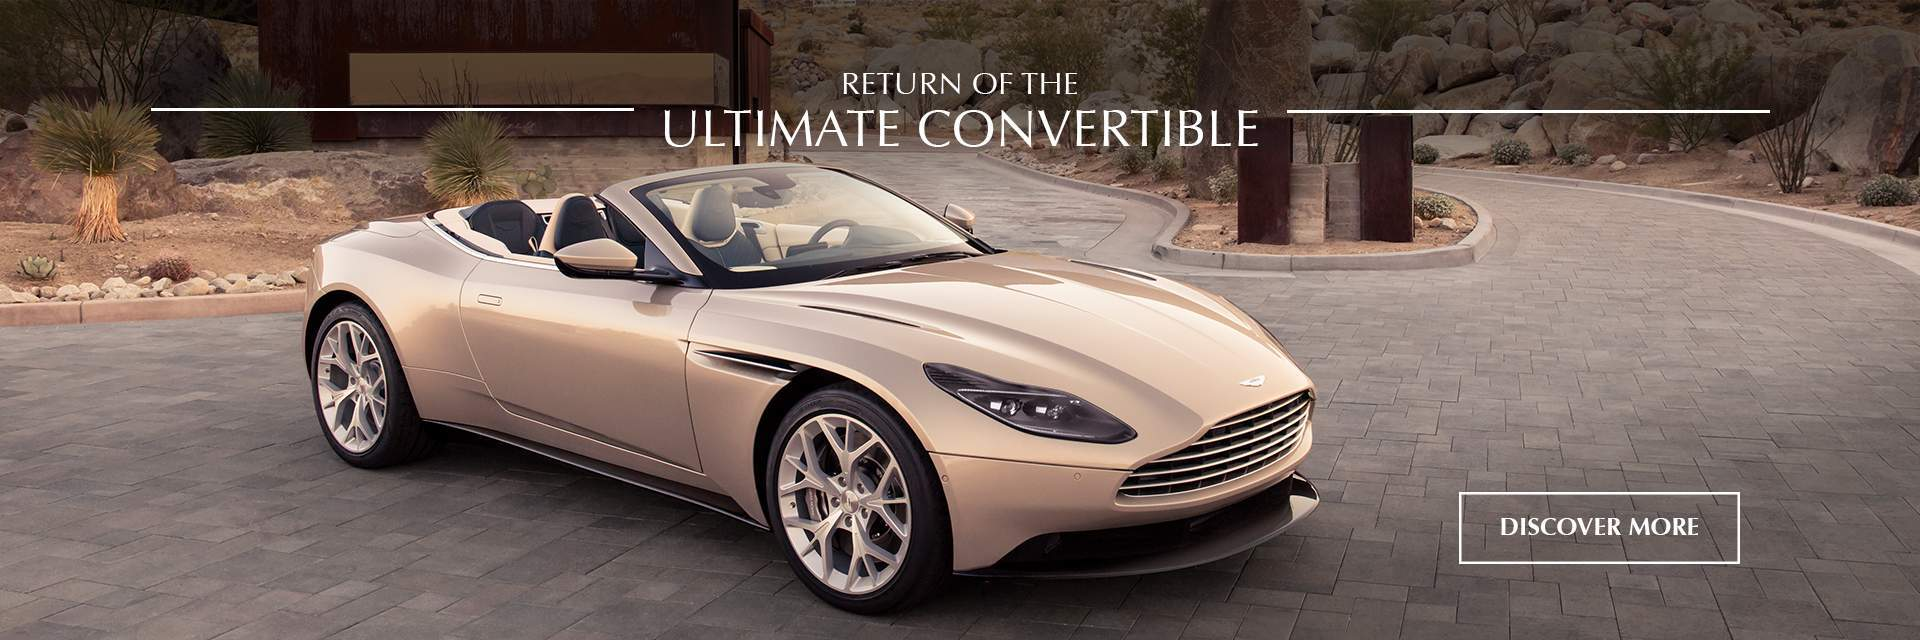 Return Of The Ultimate Convertible